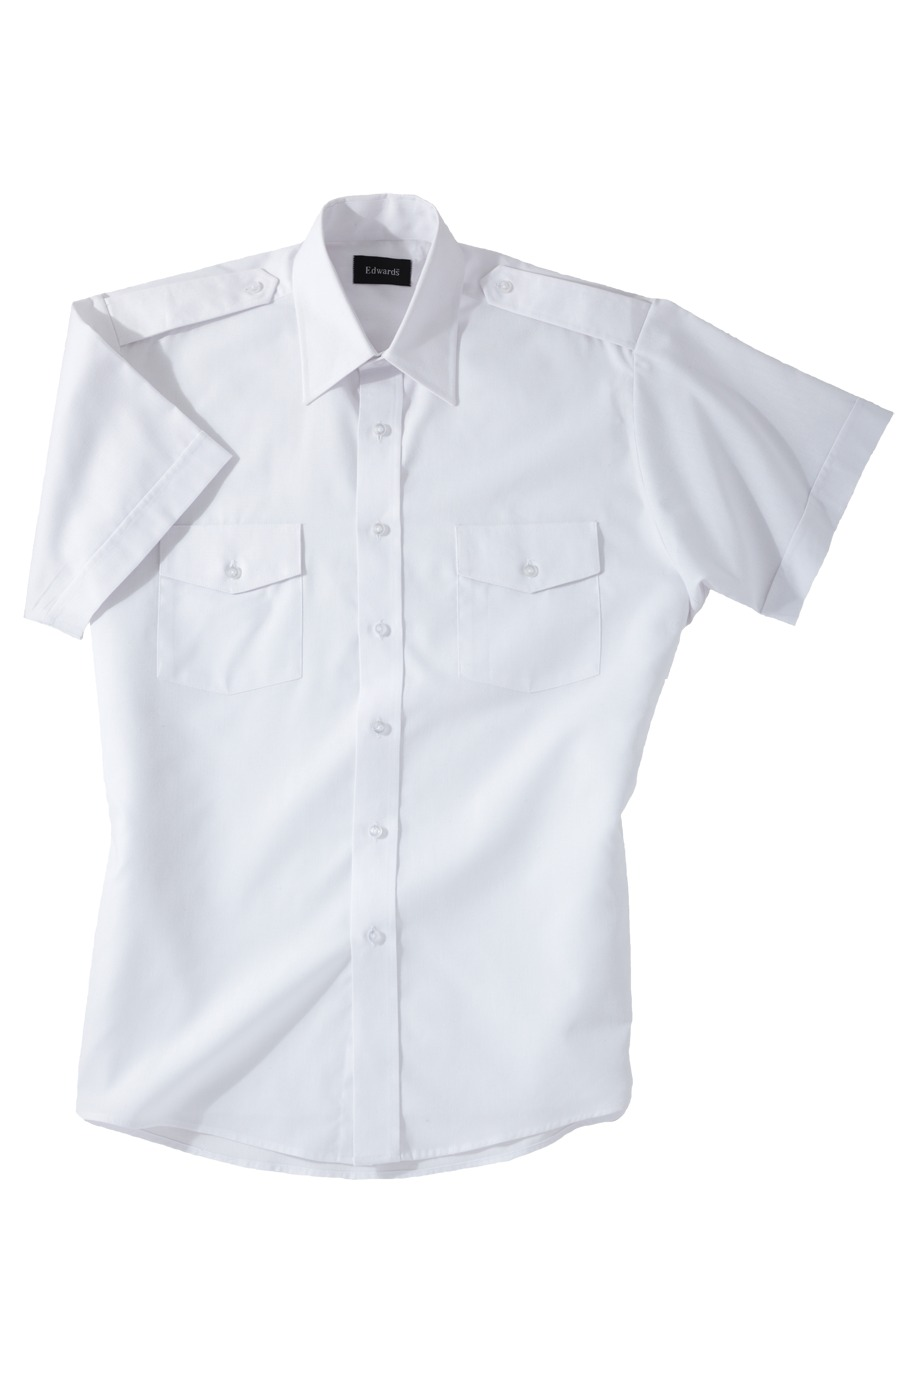 Edwards Garment 1212 - Men's Short Sleeve Navigator ...